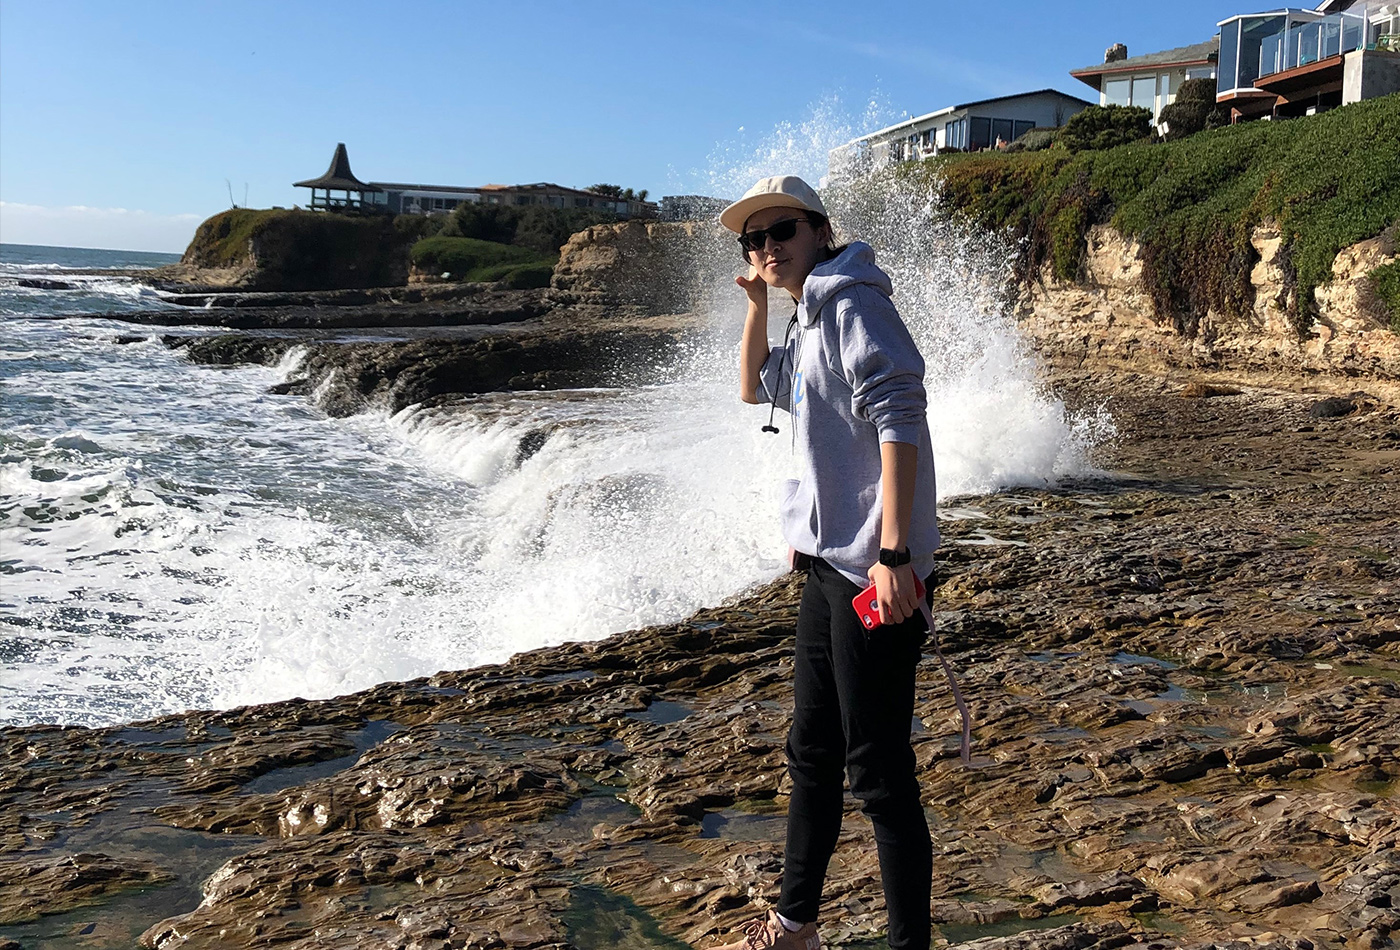 A female graduate student stands on a bluff with a wave crashing behind her.